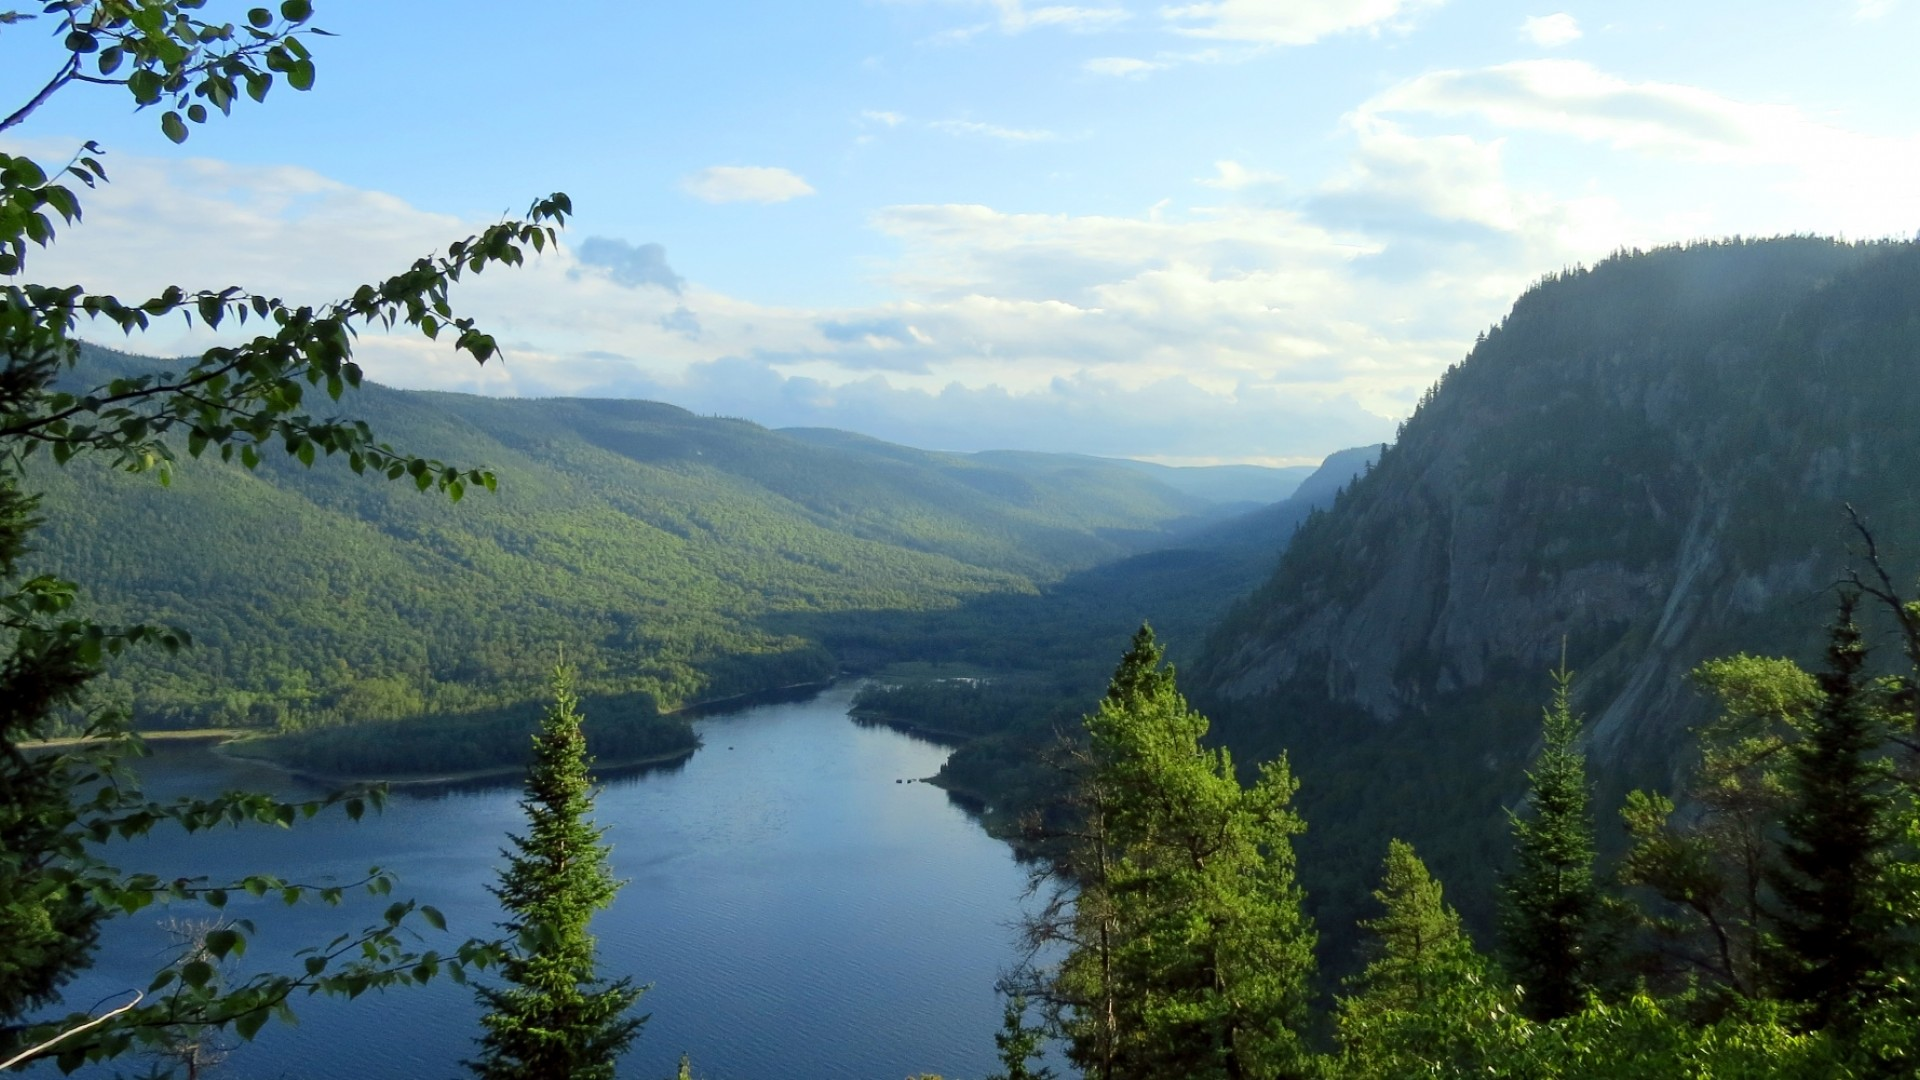 overview of Saguenay Fjord